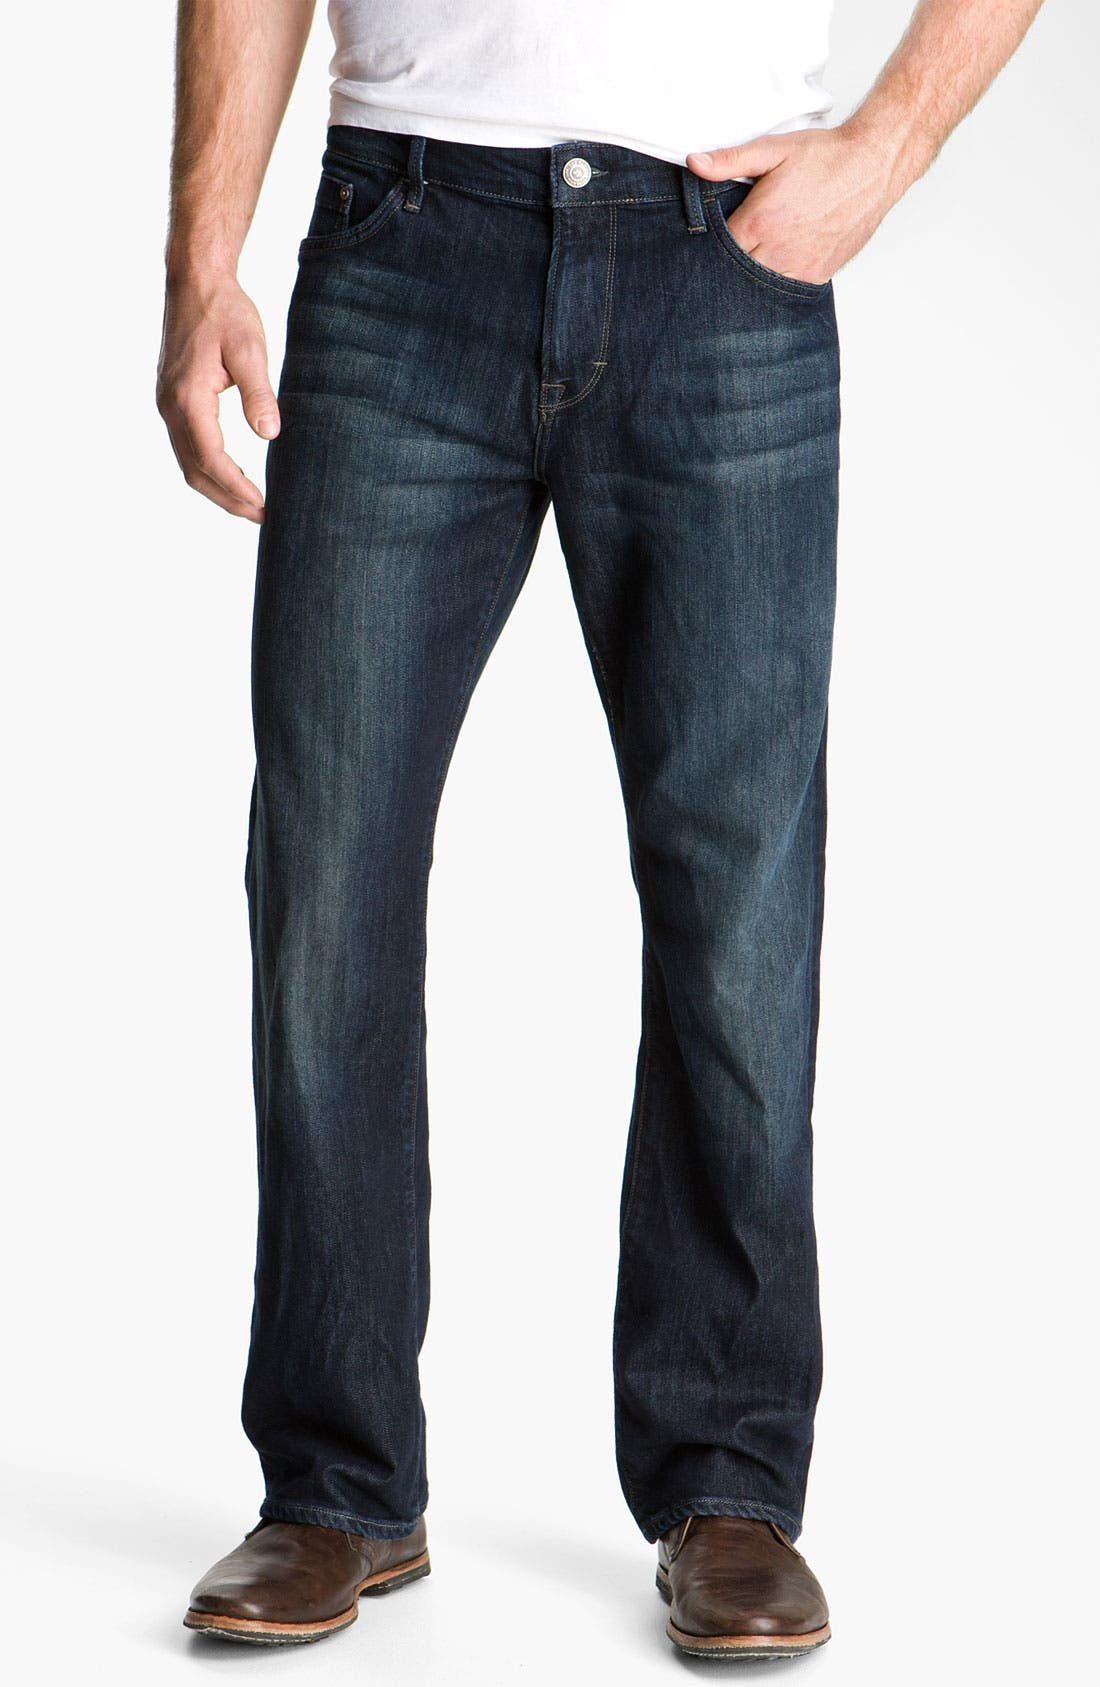 Main Image - Mavi Jeans 'Matt' Relaxed Fit Jeans (Deep Stanford Comfort) (Regular & Tall) (Online Only)